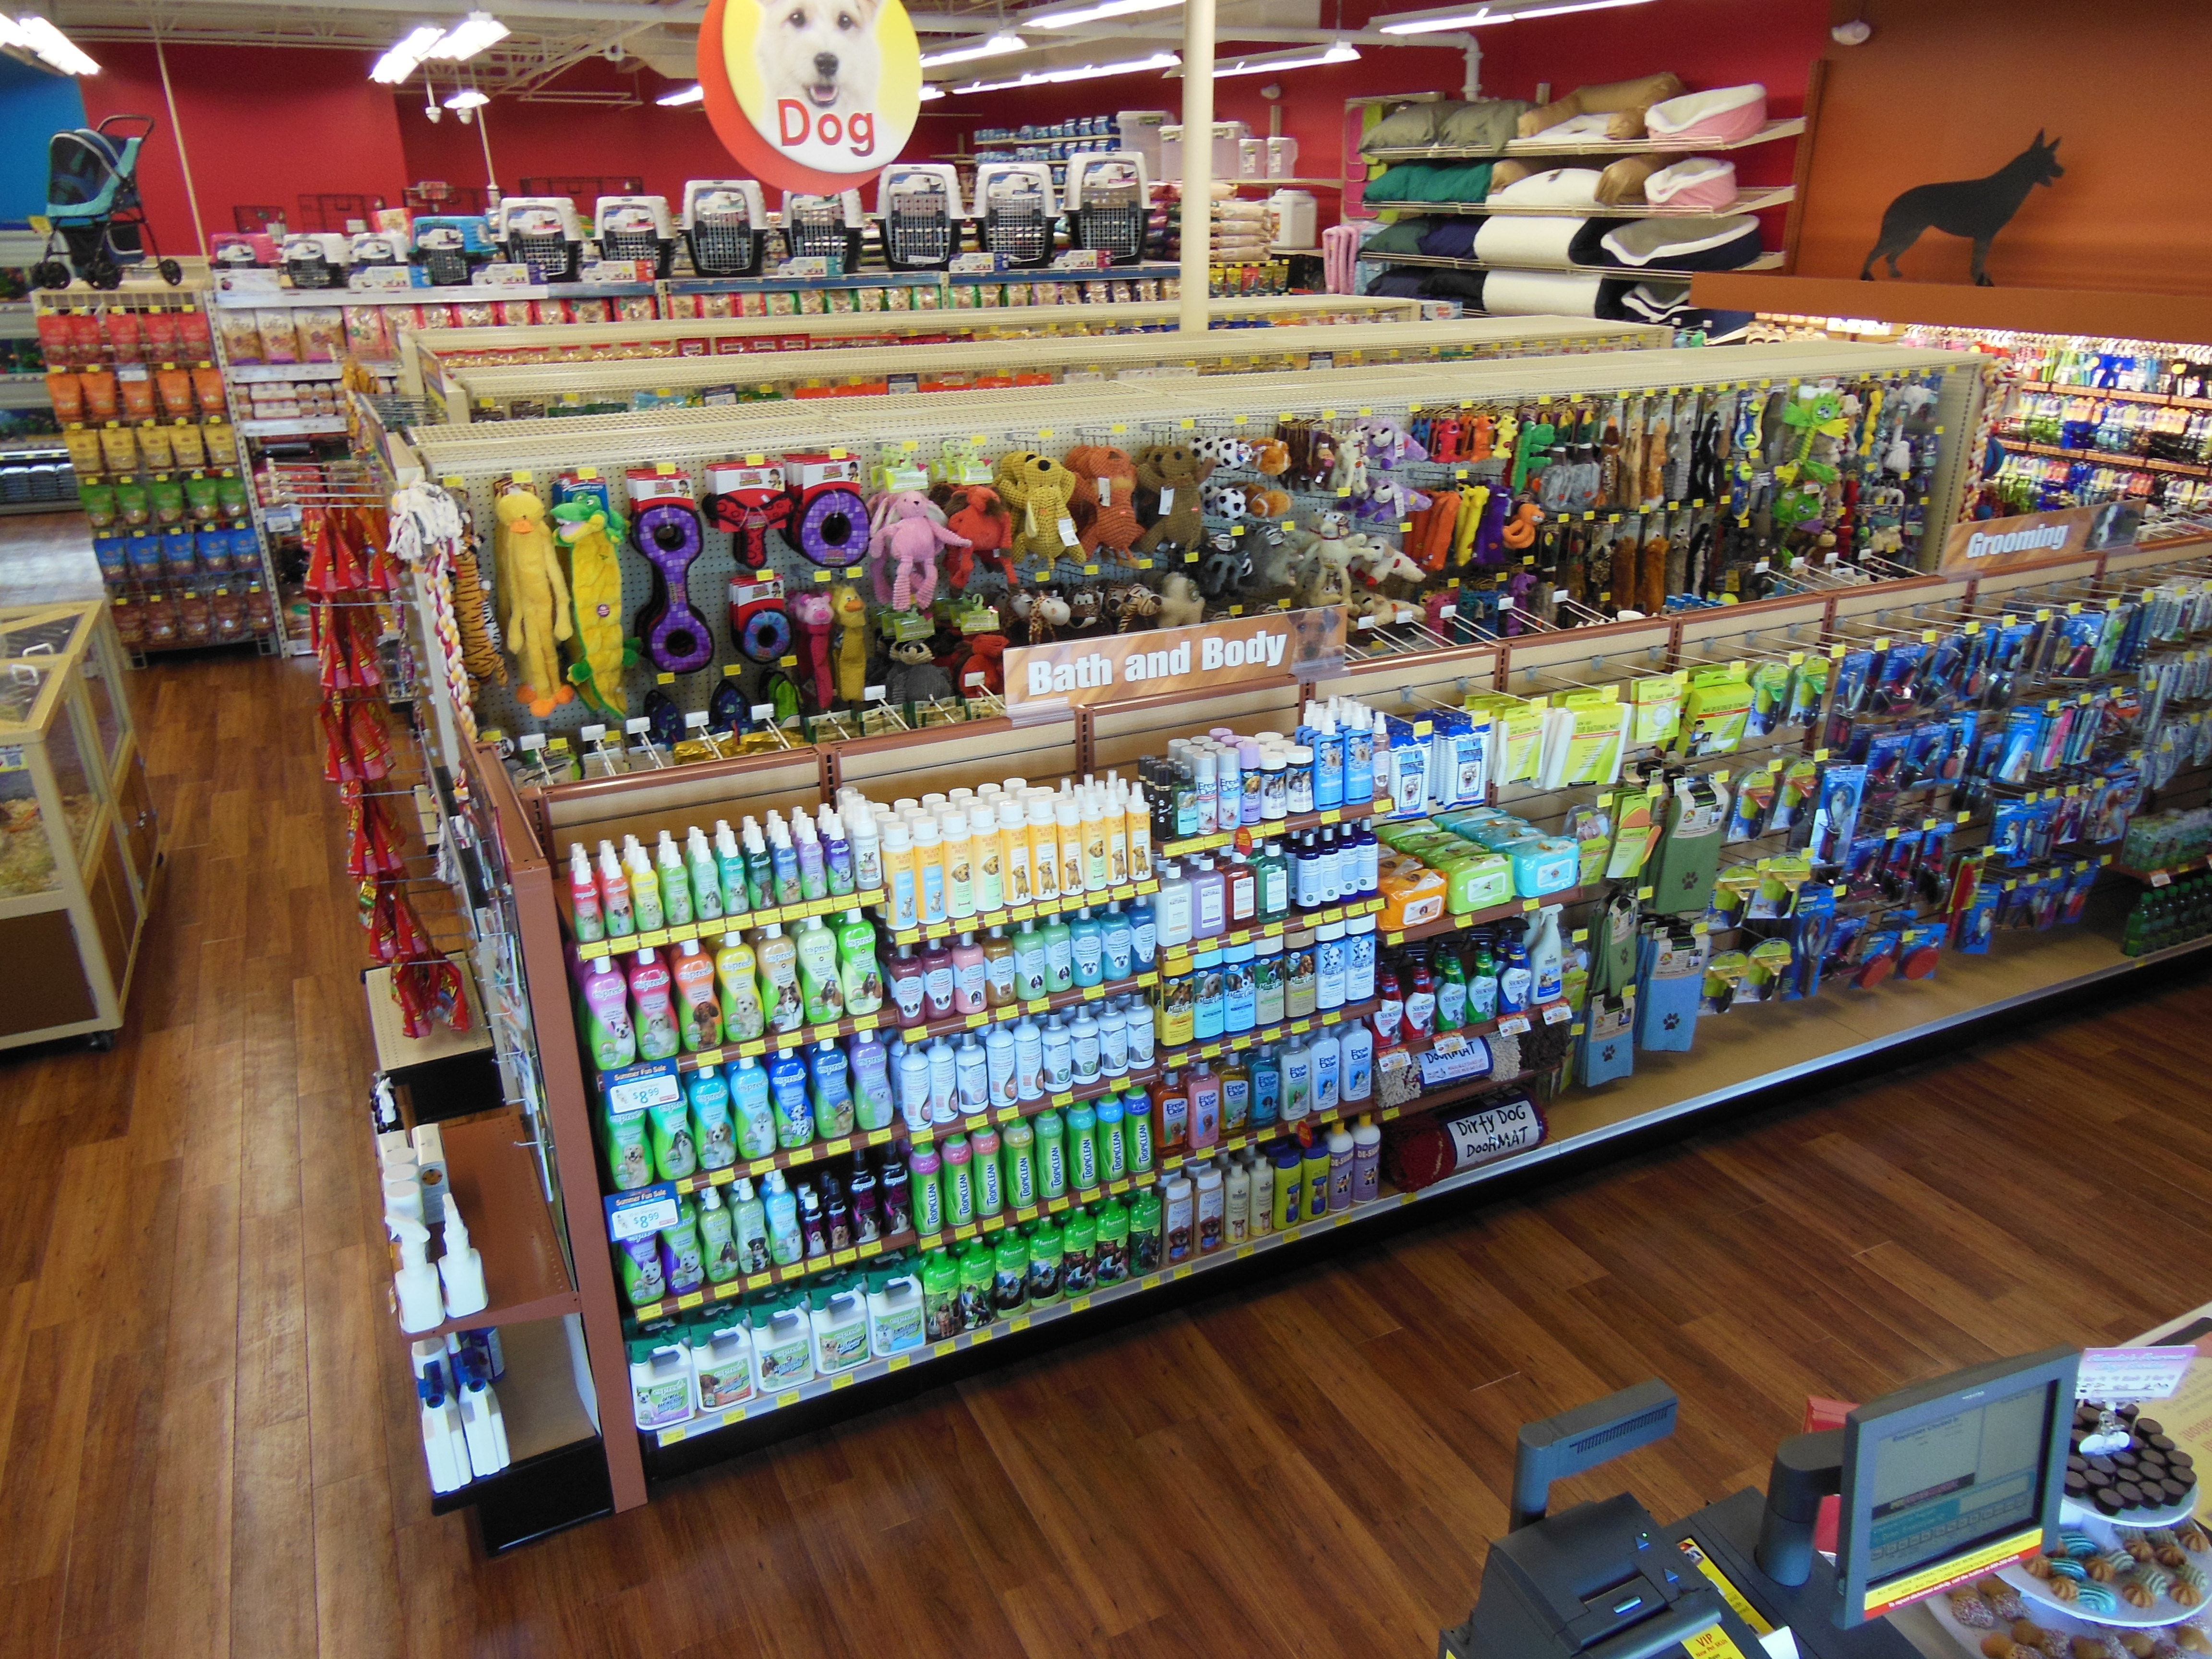 The latest Tweets from Pet Supermarket (@petsupermarkets). #WeSpeakPet at over locations and online! Use #petsupermarket and #mypetisavip for a chance to be featured. Sunrise, Florida, USA.